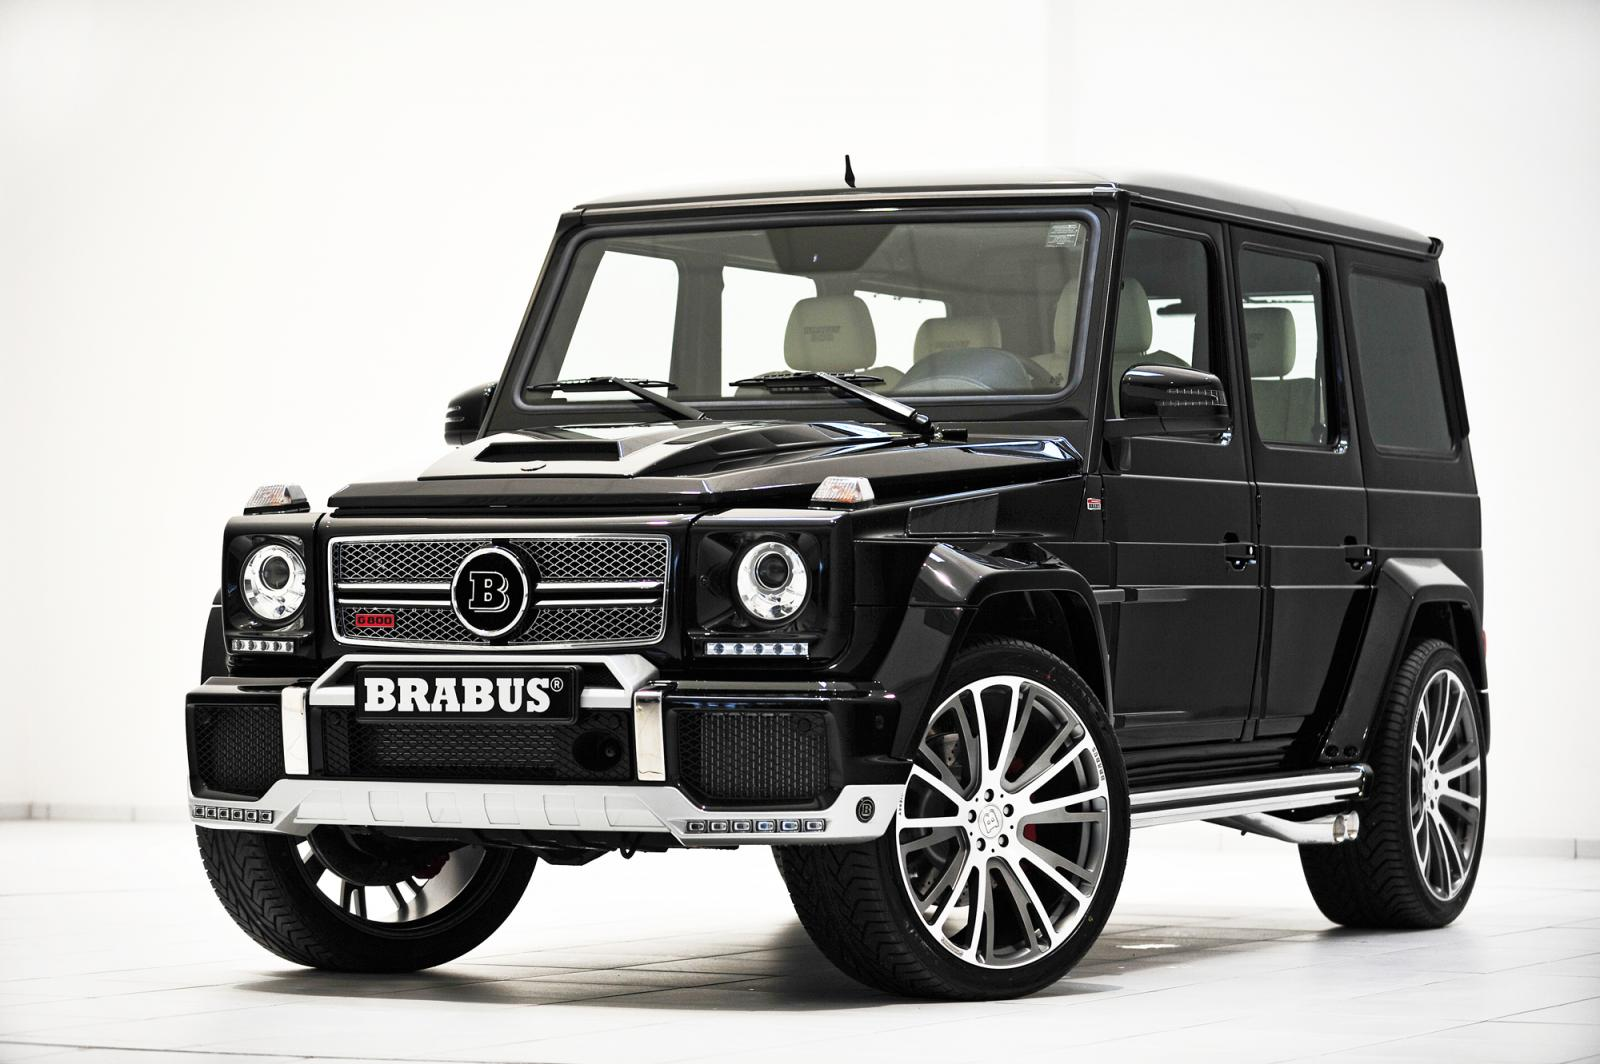 2013 brabus widestar 800 based on mercedes g65 amg for Mercedes benz brabus amg